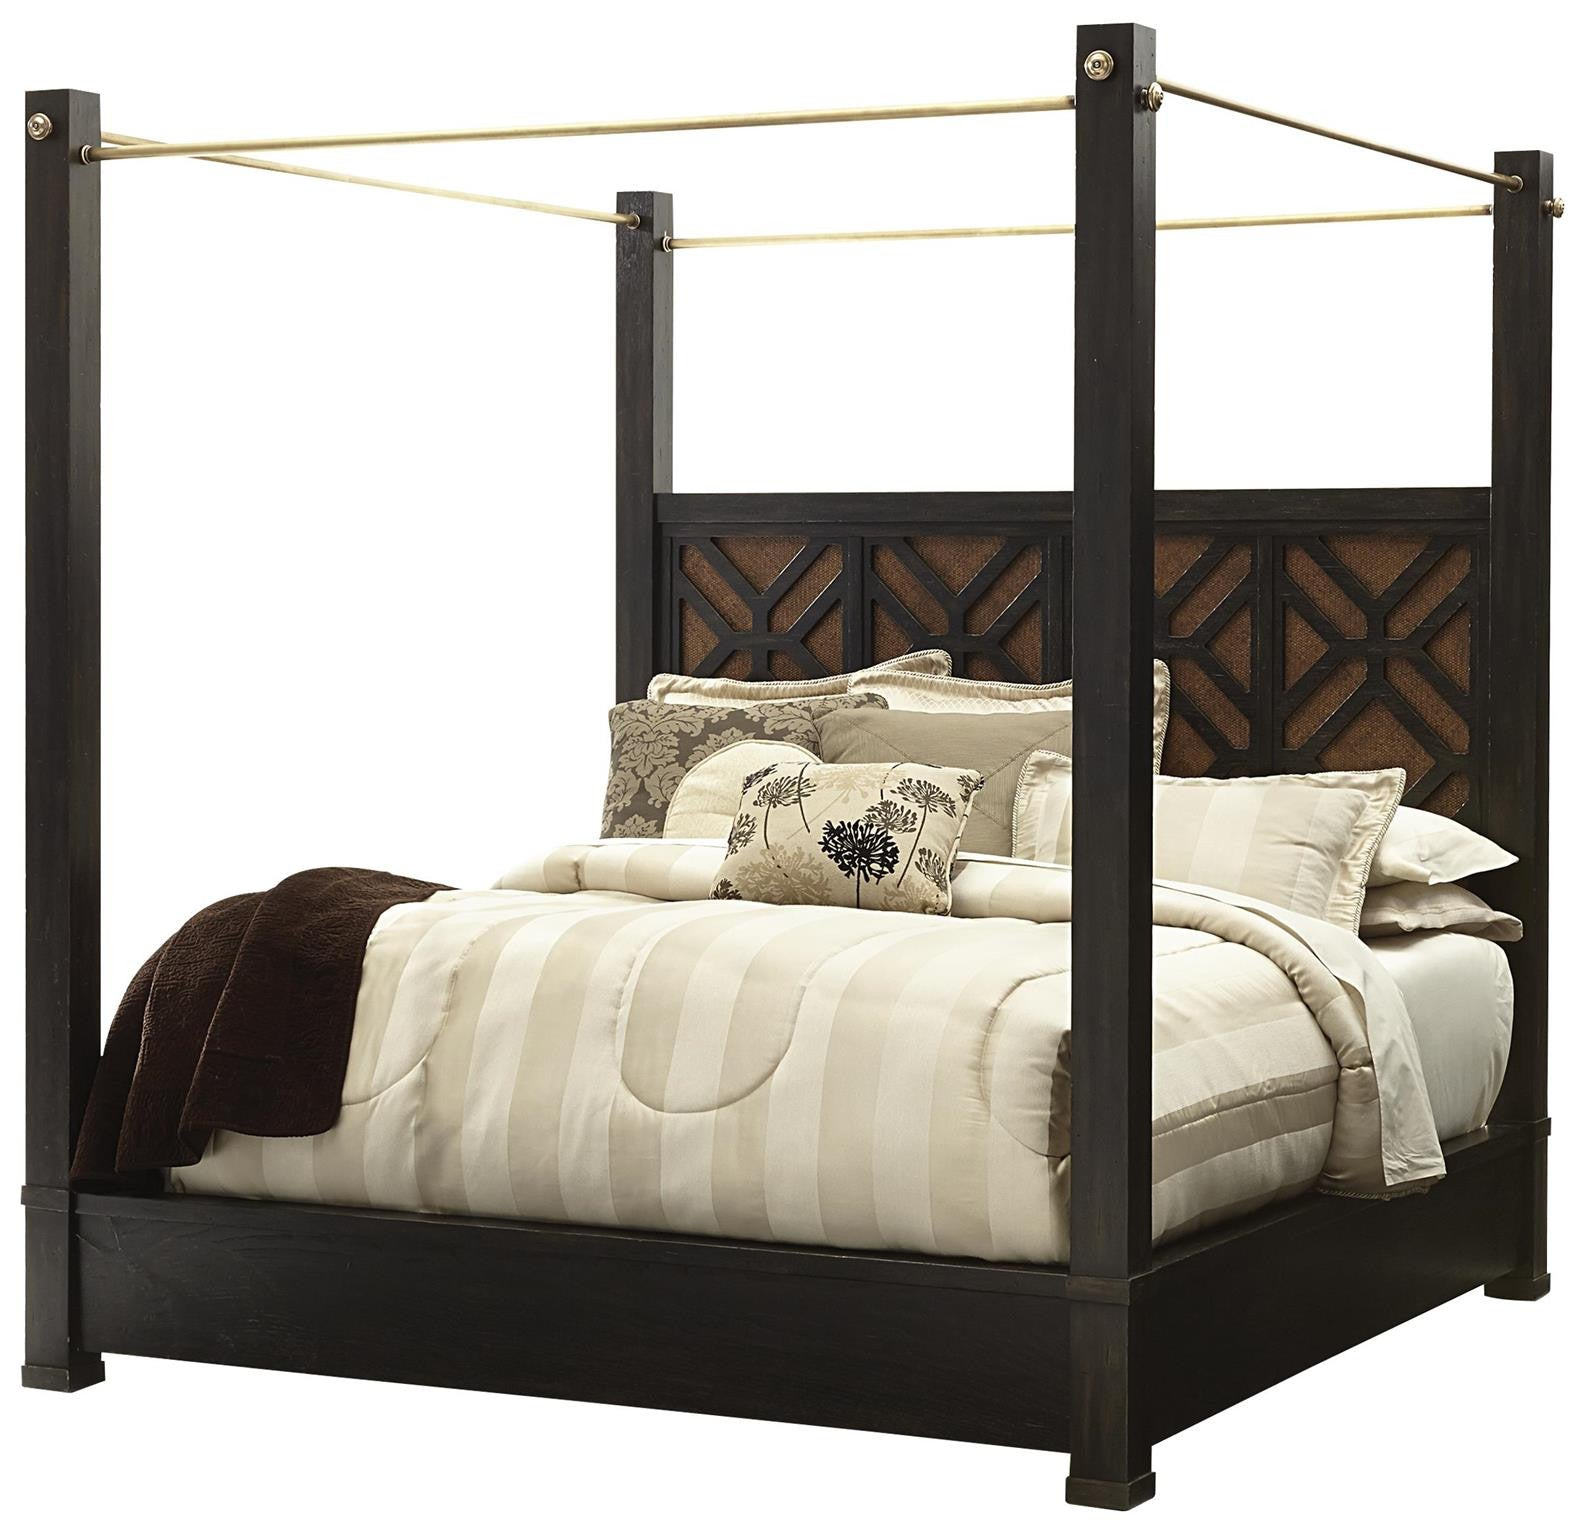 Leslie S King Metal Bed Side Rails Support System And Canopy Rails  sc 1 st  Willis Furniture : canopy rails - memphite.com